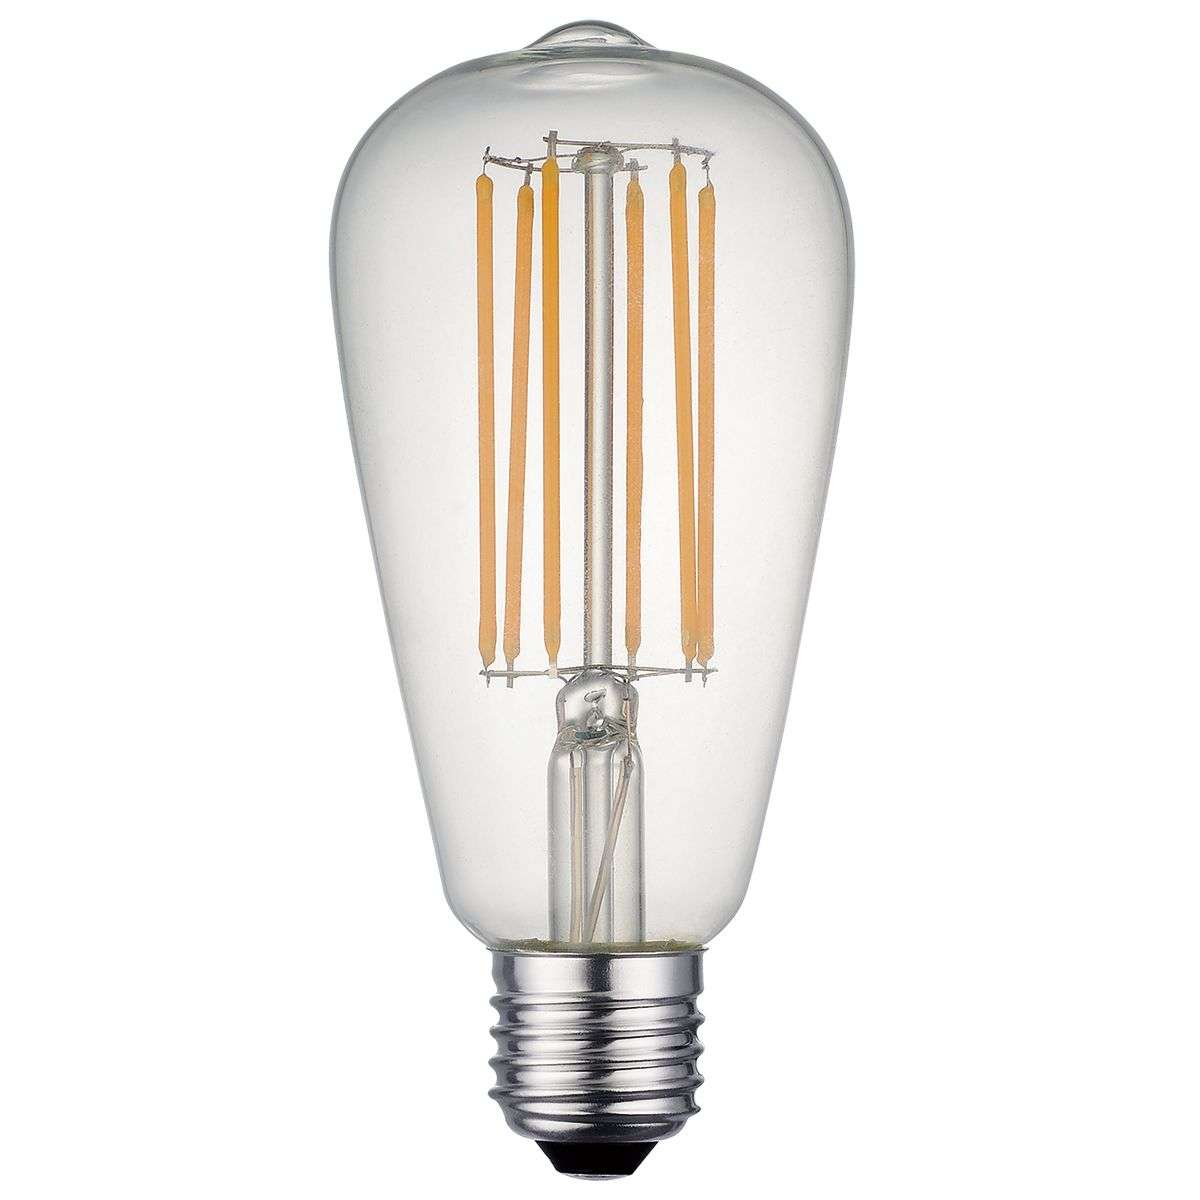 E27 LED Dimmable Rustic Filament Lamp 7W 850 Lumens Clear